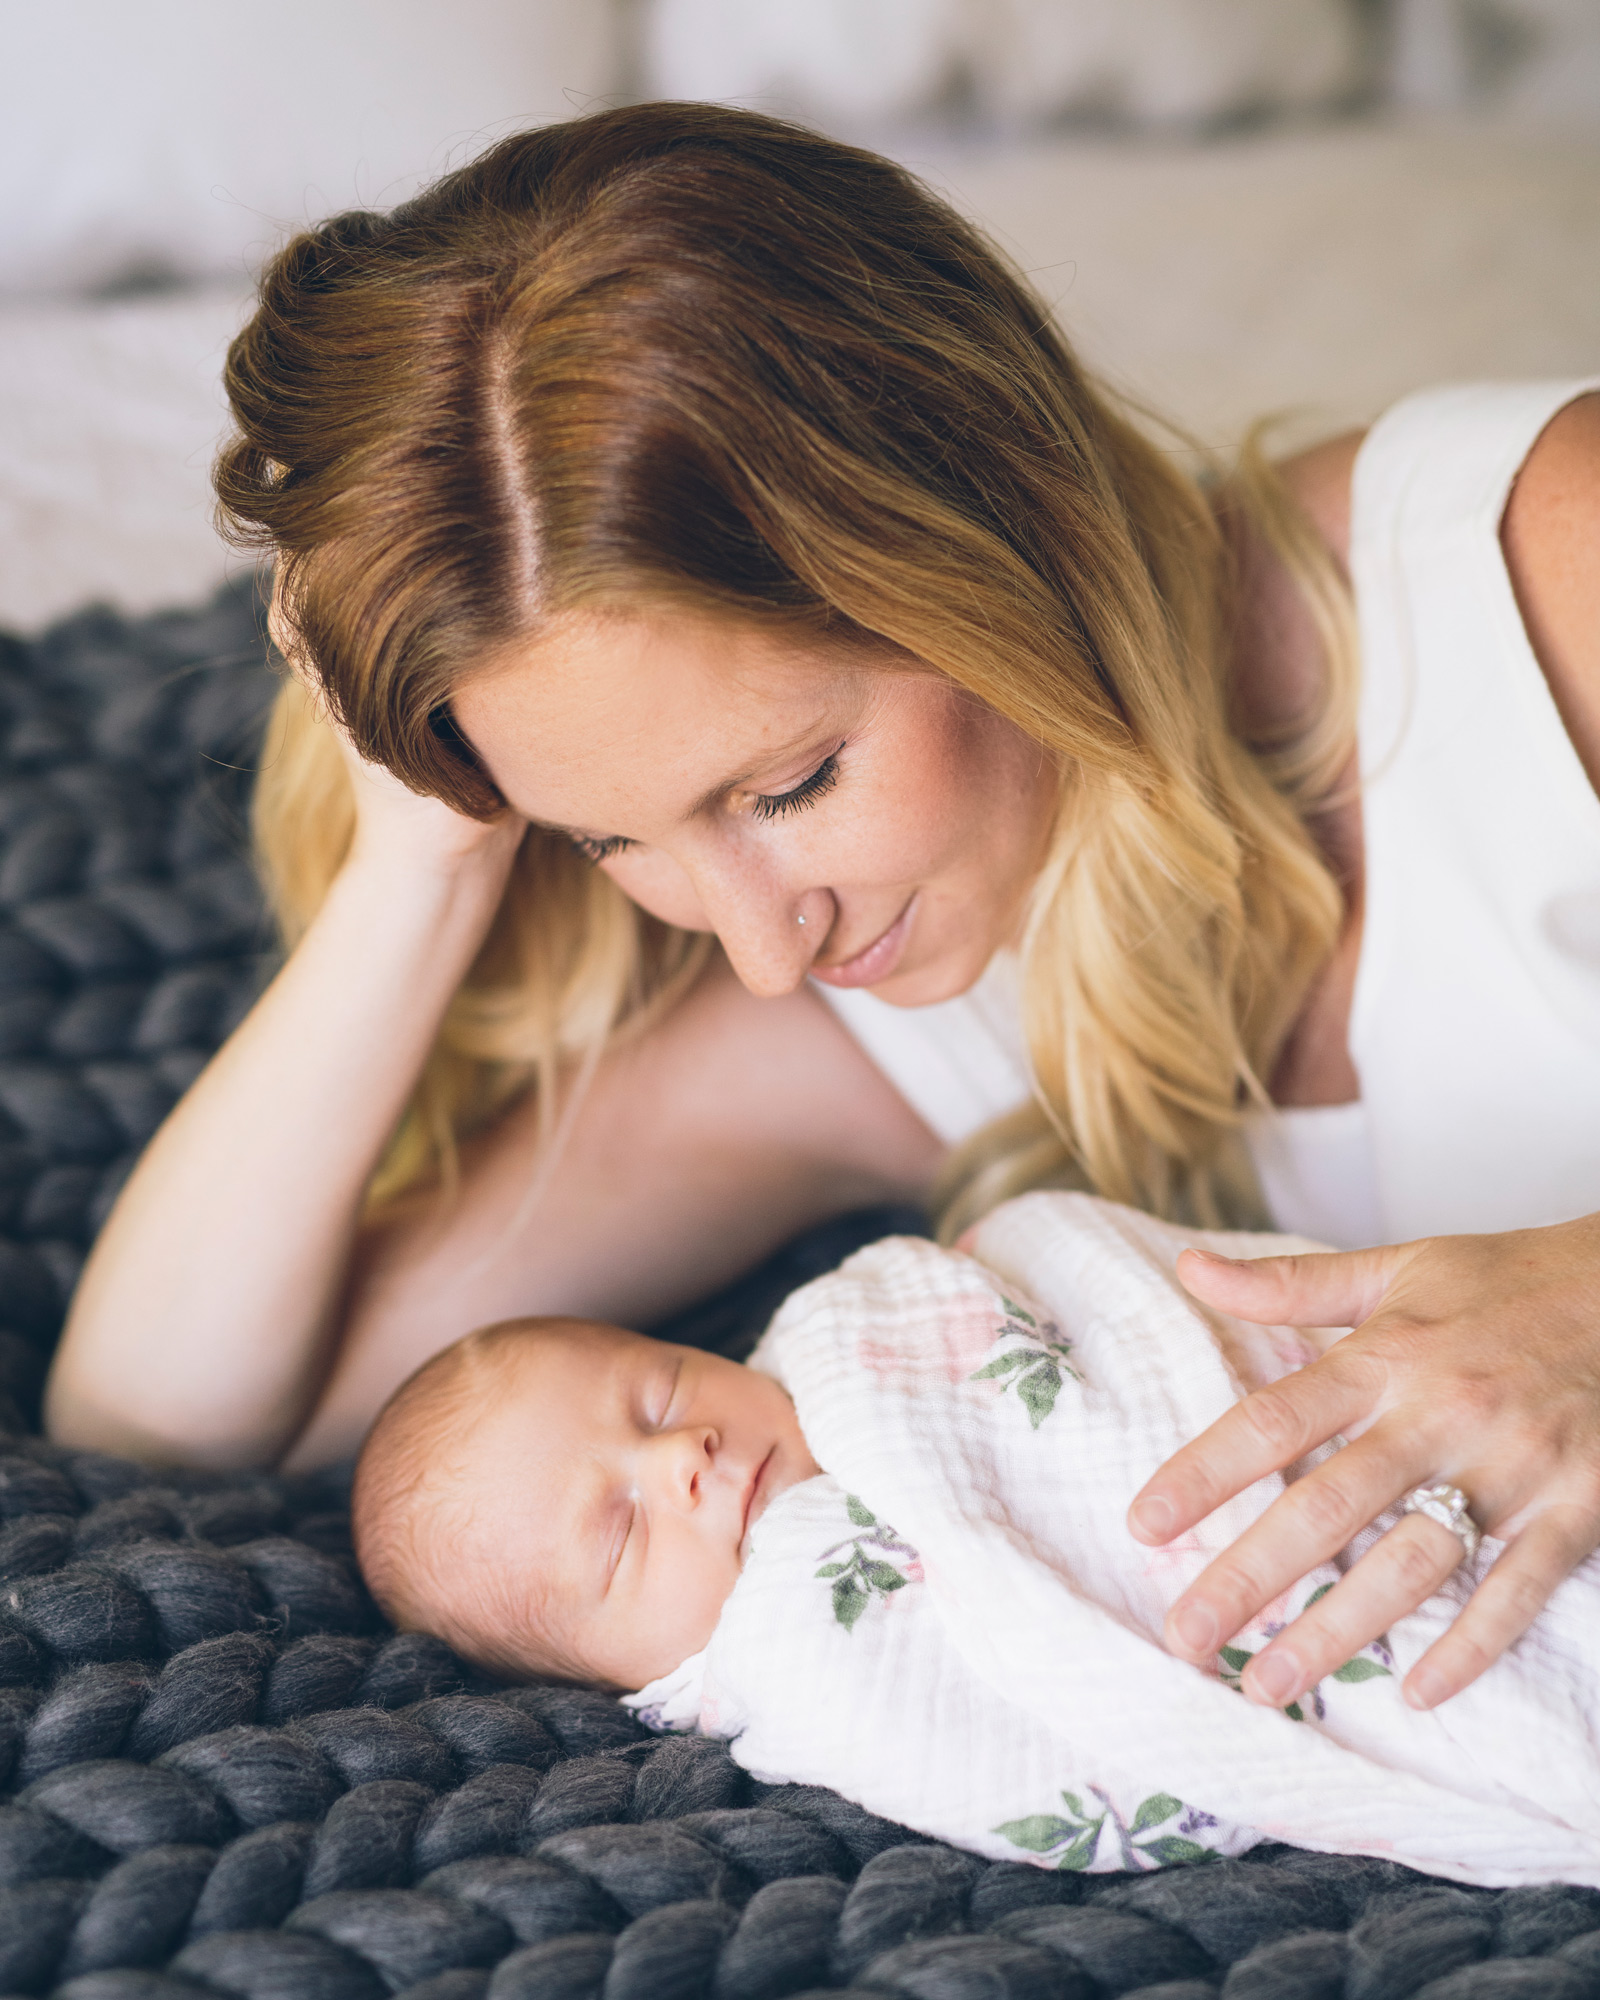 mother-looking-lovingly-at-her-newborn-baby-girl.jpg